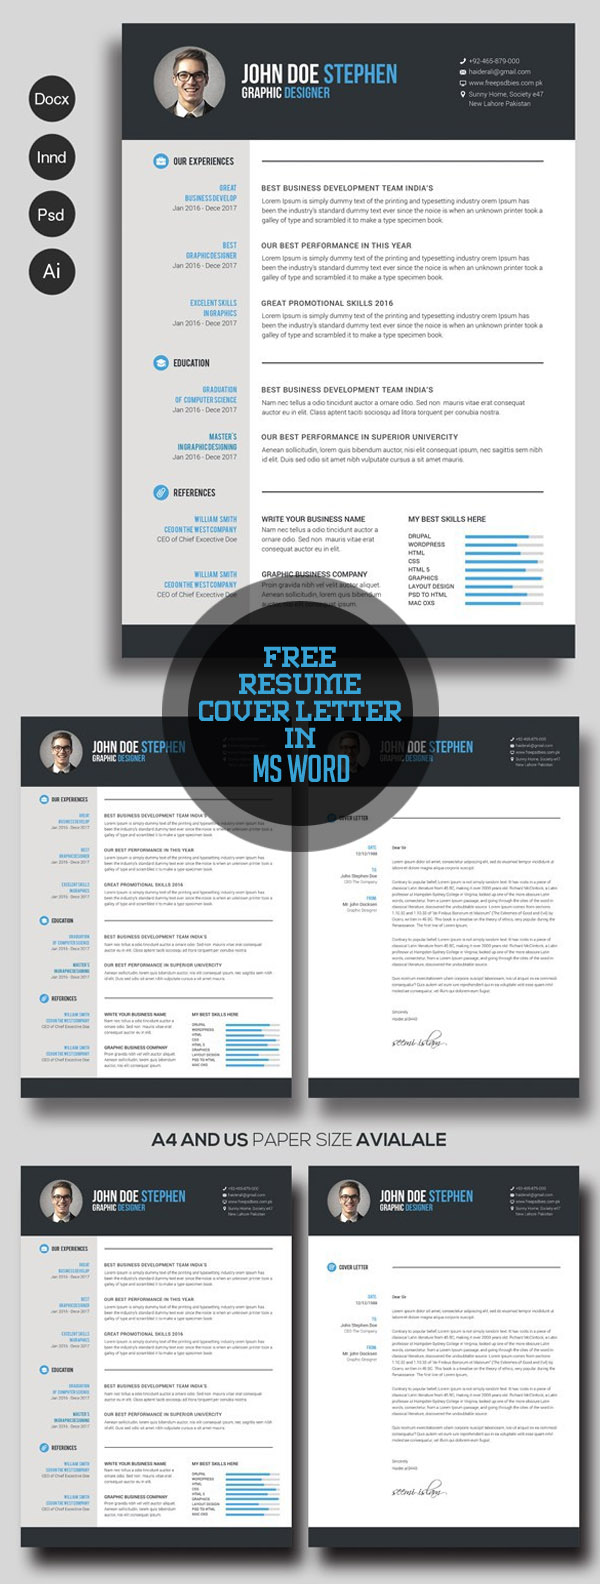 free resume cover letter in ms word - Free Ms Word Resume Templates